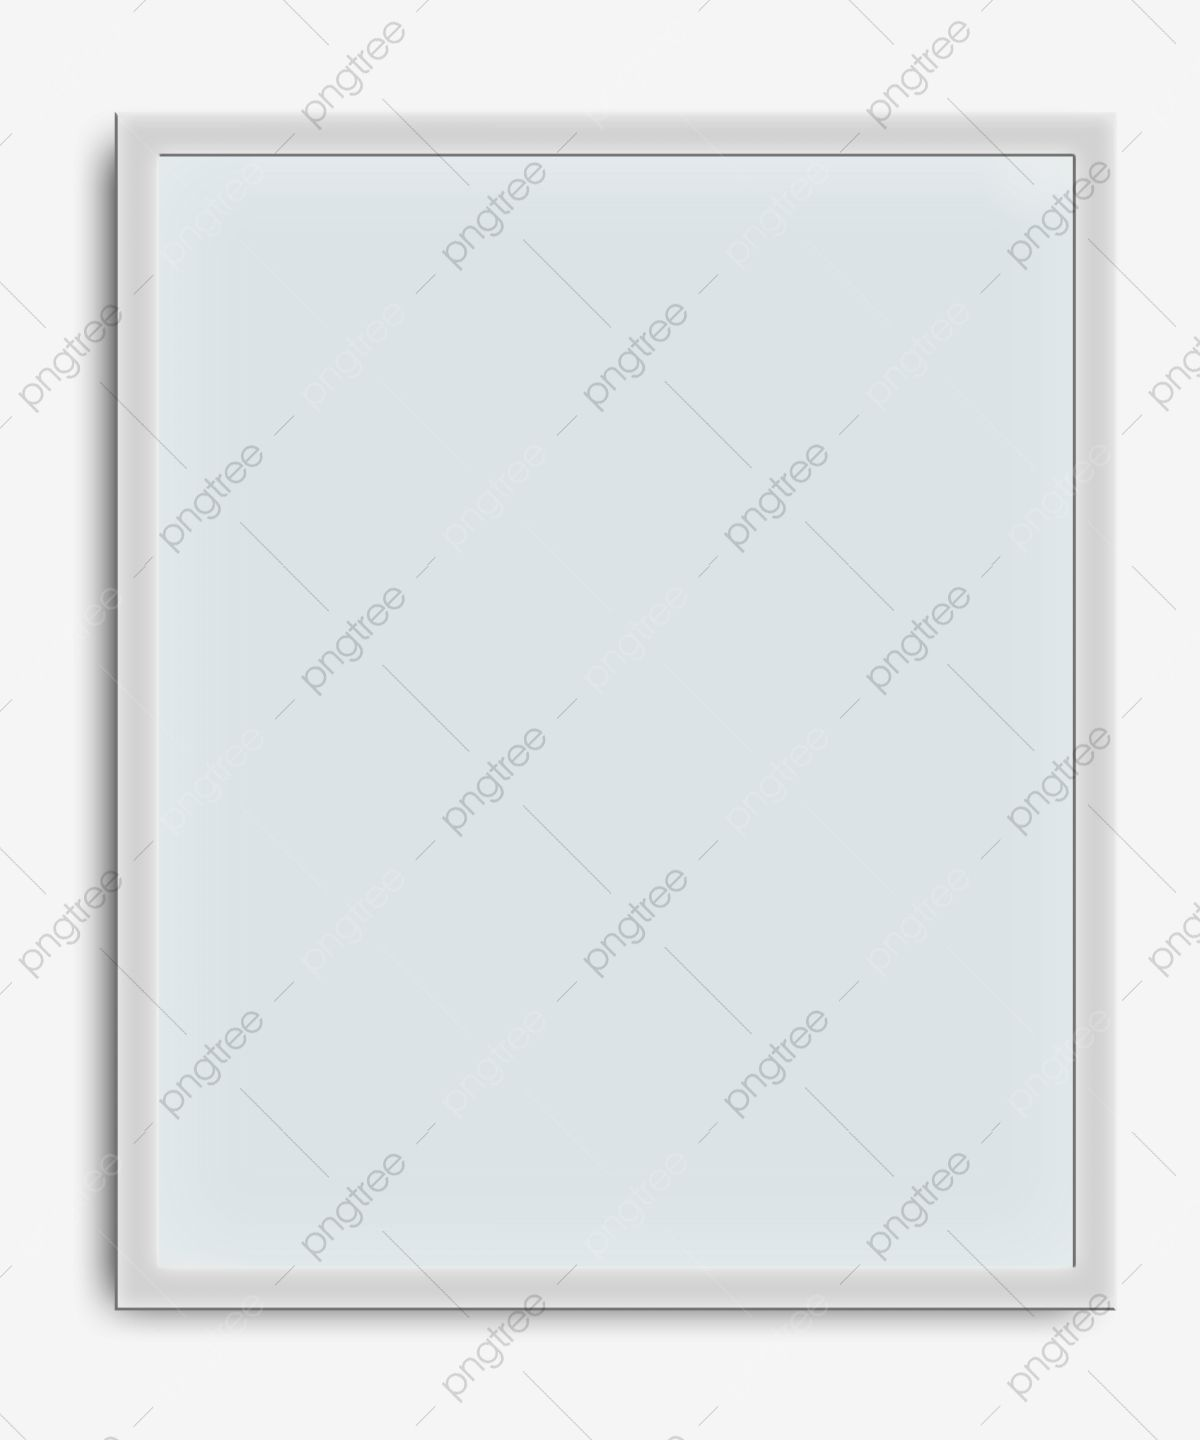 Transparent Glass Mirror Illustration Glass Clipart Glass Mirror Png Transparent Clipart Image And Psd File For Free Download Mirror Illustration Glass Mirror Clip Art